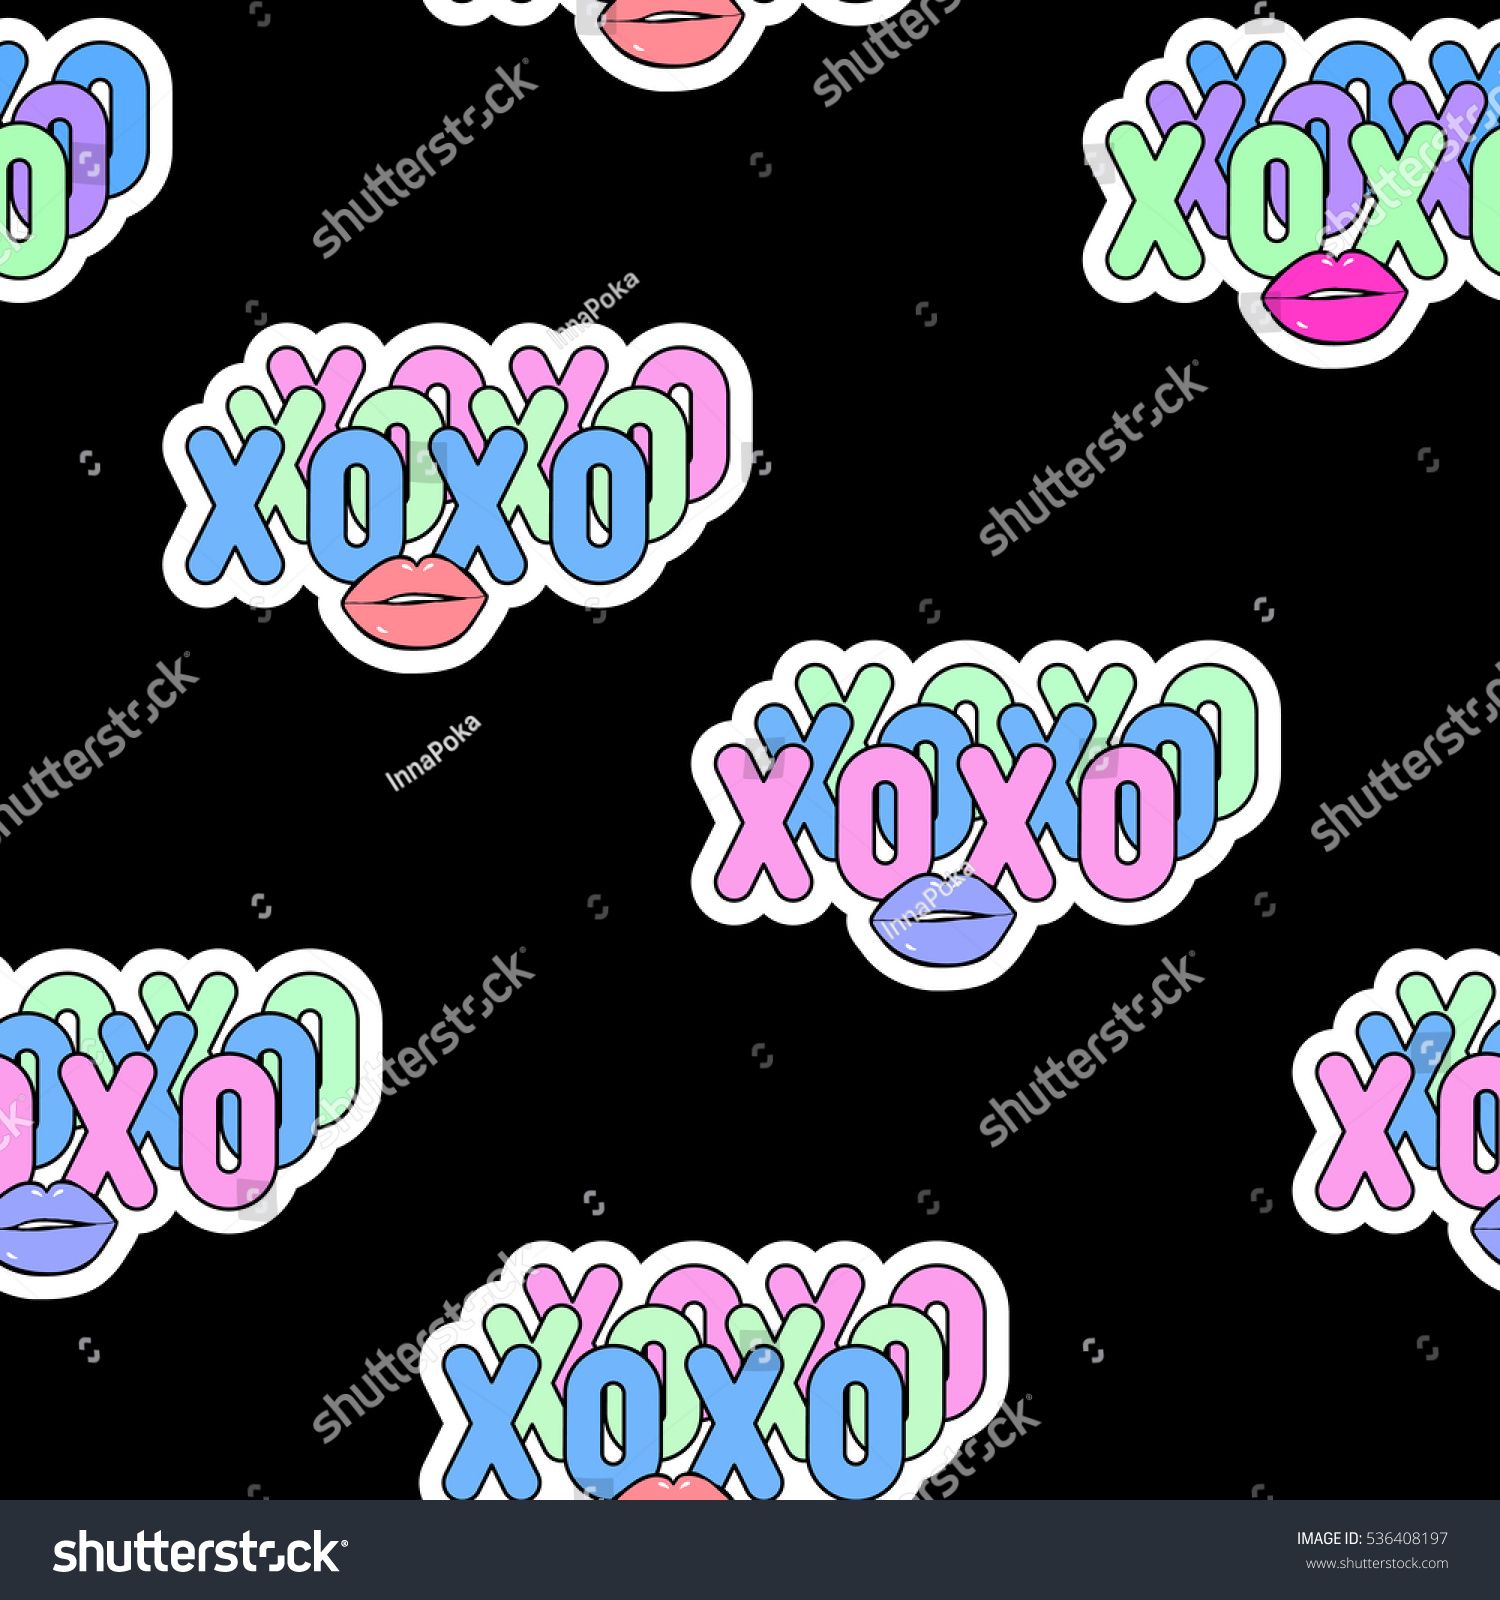 Seamless pattern xoxo abbreviation text kiss stock vector seamless pattern with xoxo abbreviation text and kiss lips symbols patch badges biocorpaavc